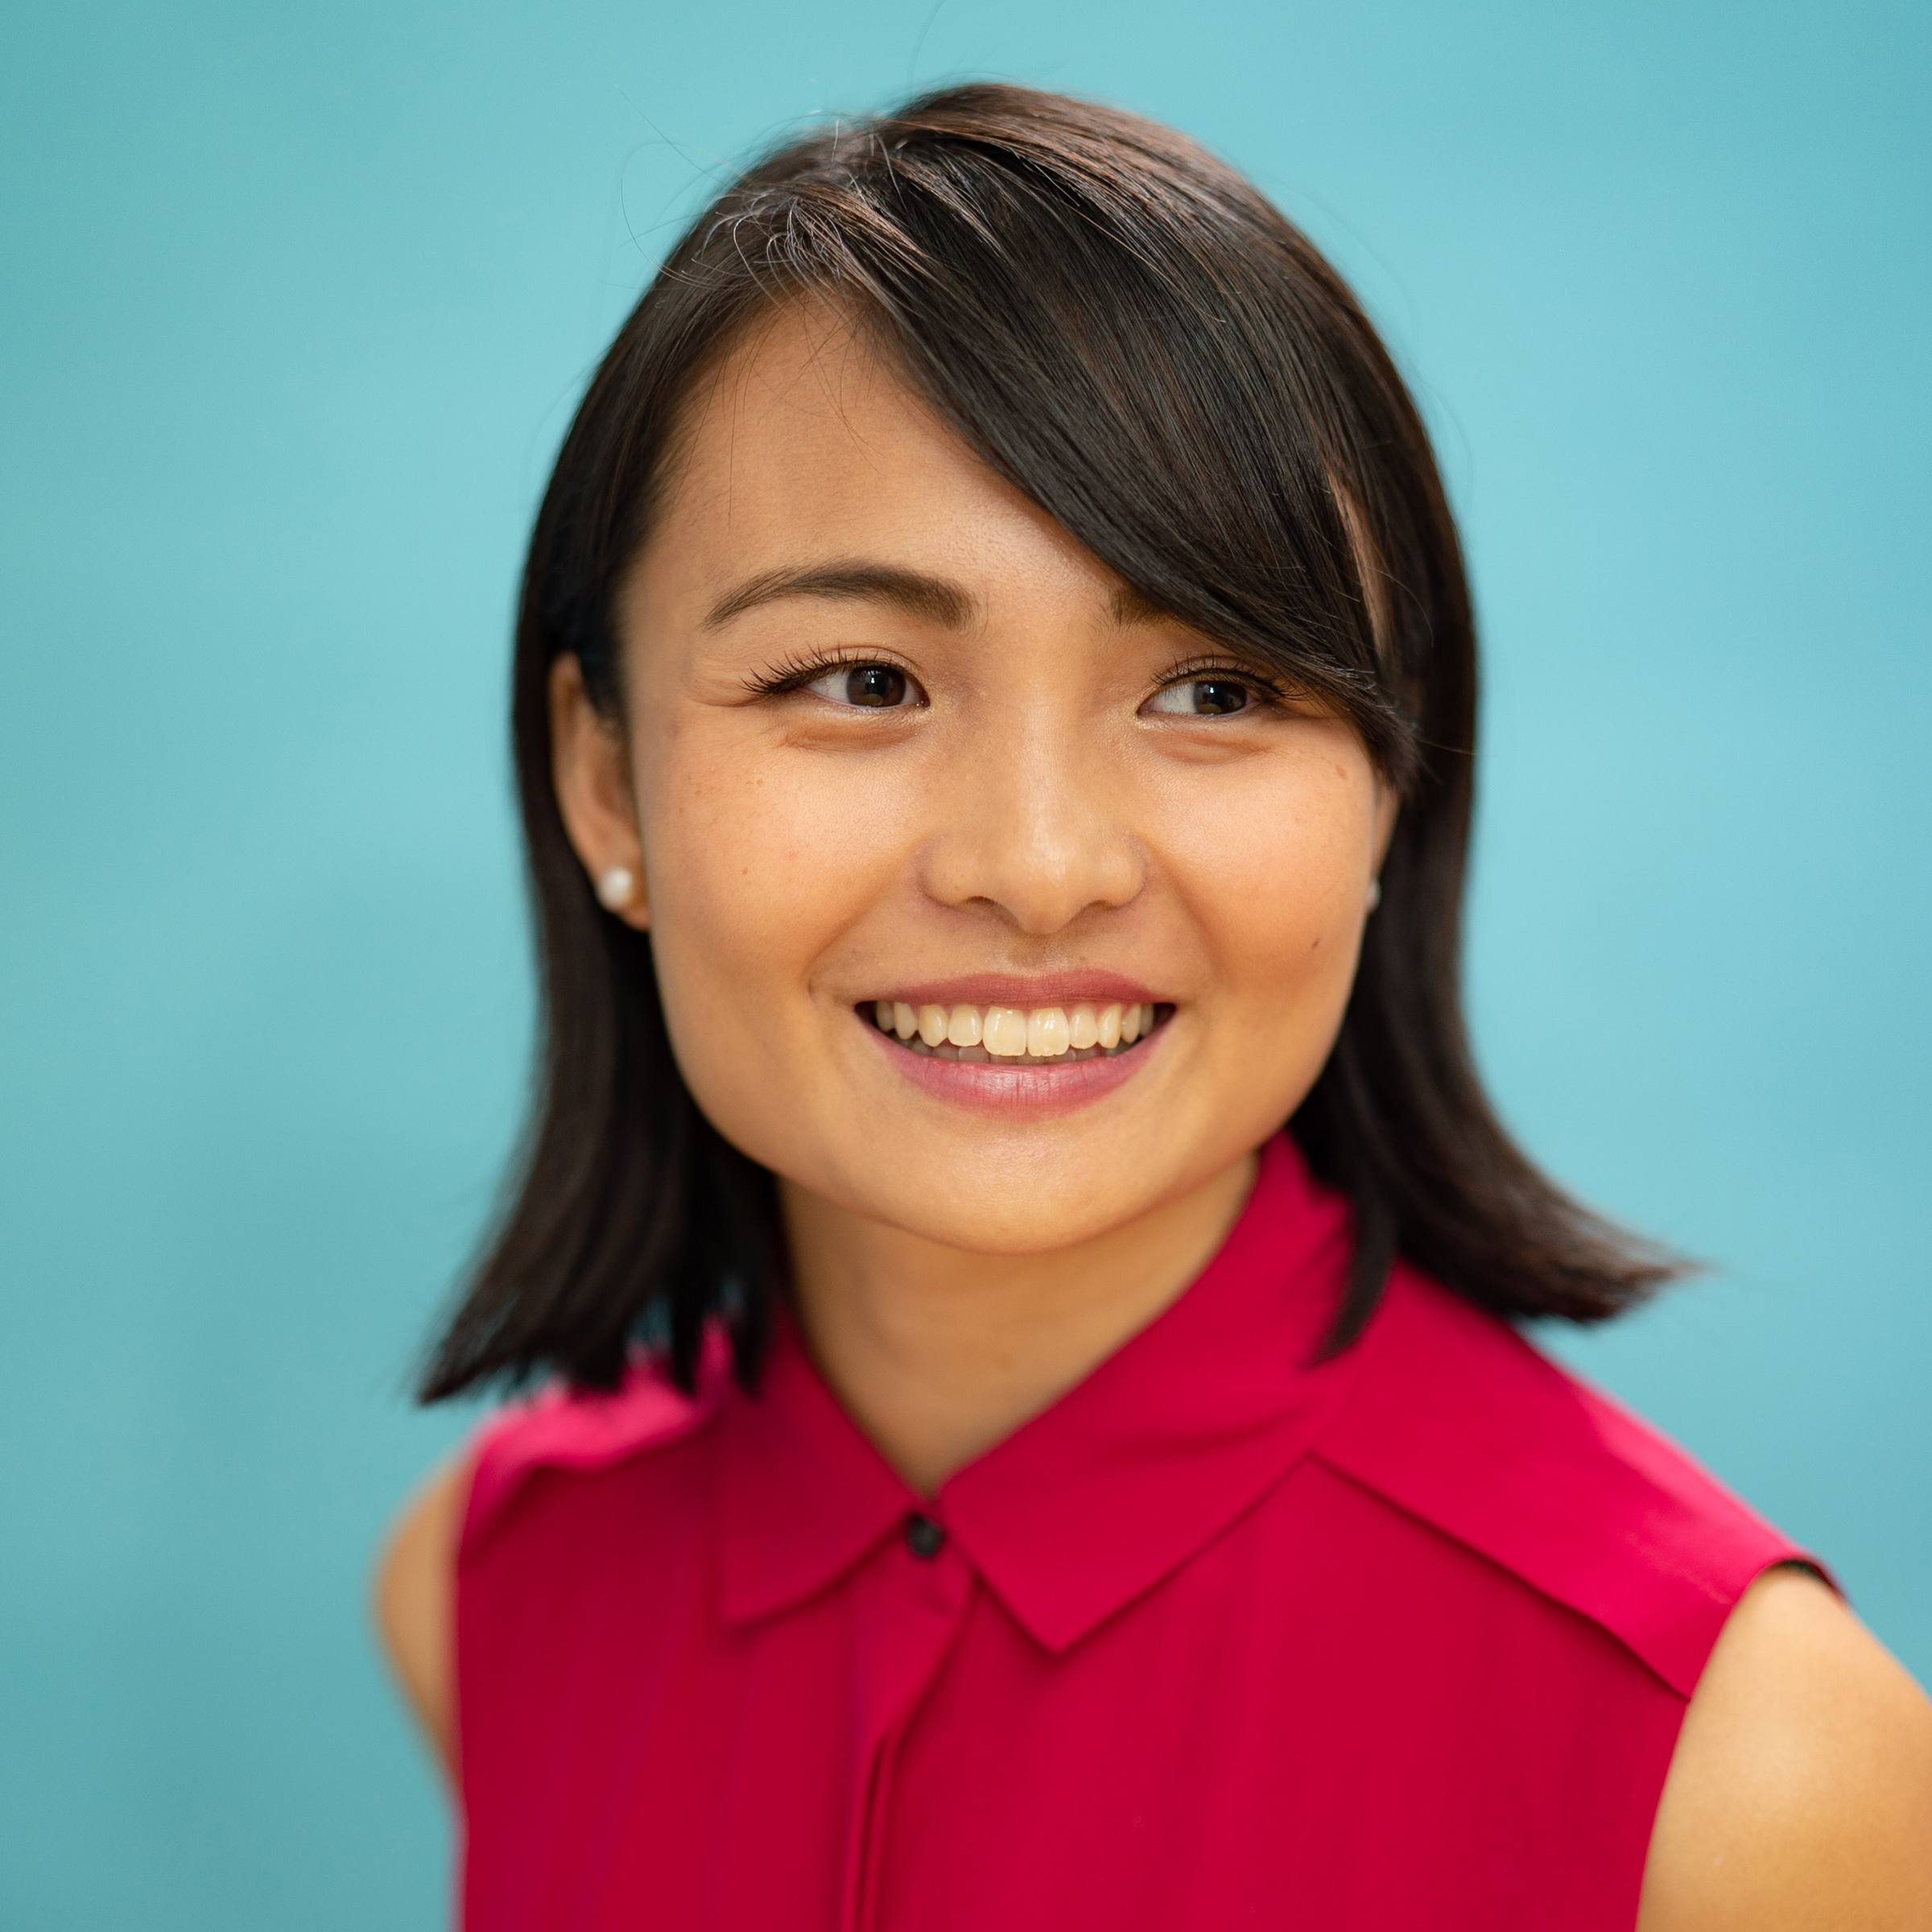 A picture of Angela Lim